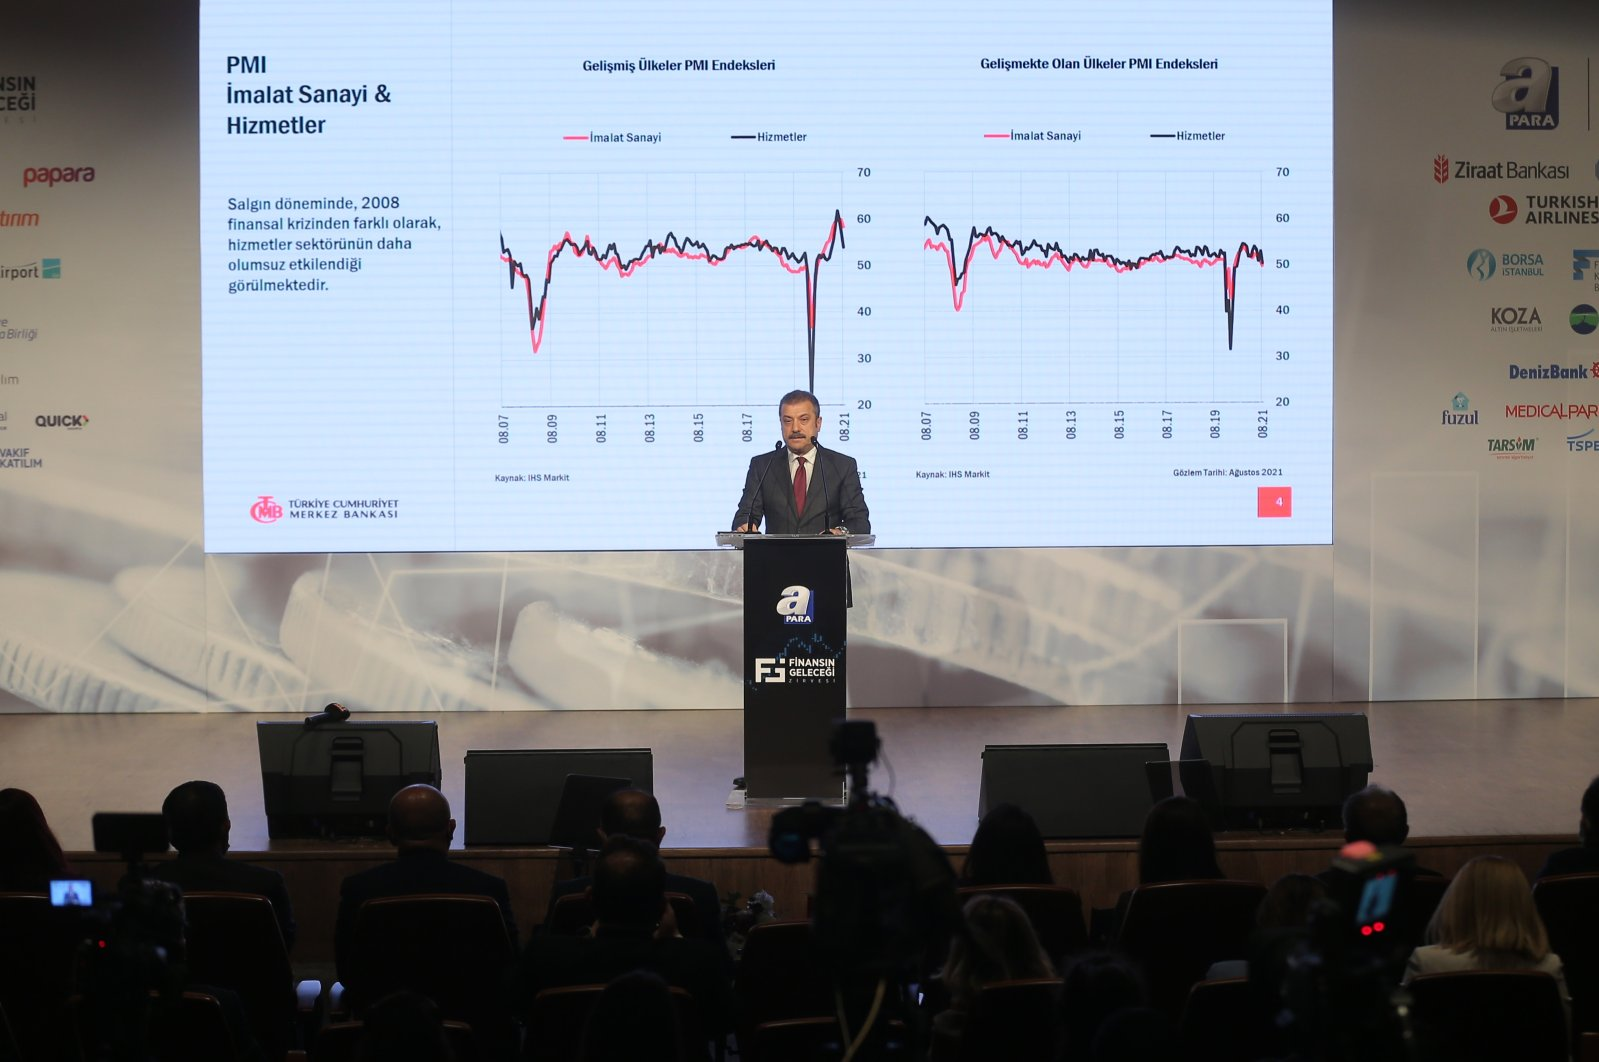 The Central Bank of the Republic of Turkey (CBRT) Governor Şahap Kavcıoğlu speaks during the Future of Finance Summit, organized by the Daily Sabah's parent company Turkuvaz and its broadcaster A Para, in Istanbul, Turkey, Sept. 28, 2021. (AA Photo)